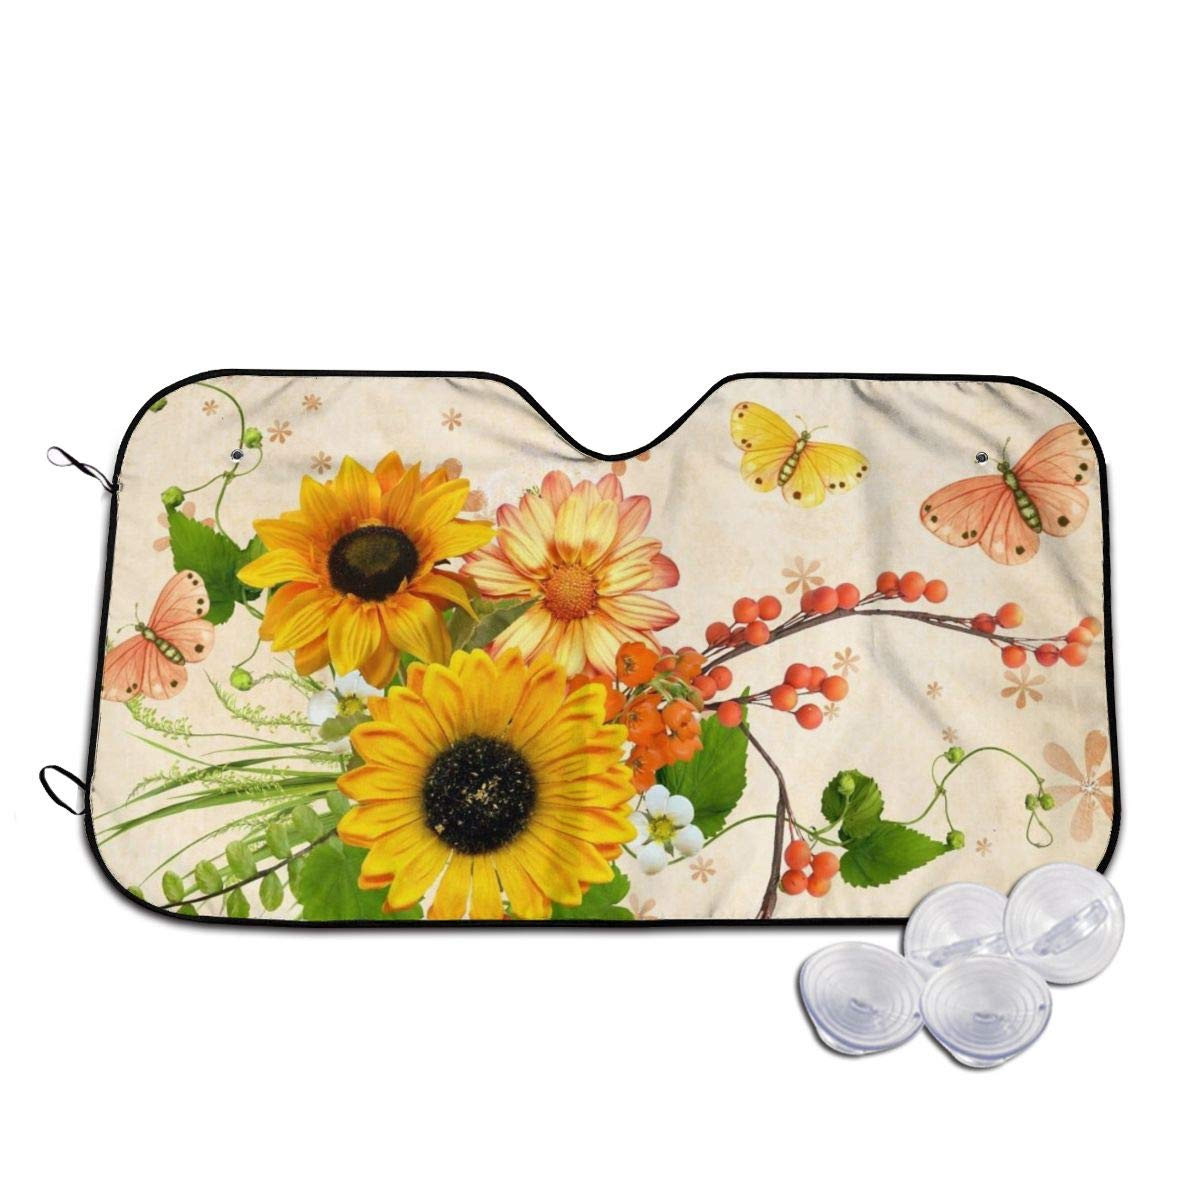 Cute Sunflower and Butterfly Front Windshield Sun Shade Blocks Uv Rays Sun Visor Protector Universal for Car SUV Truck,Easy to Carry